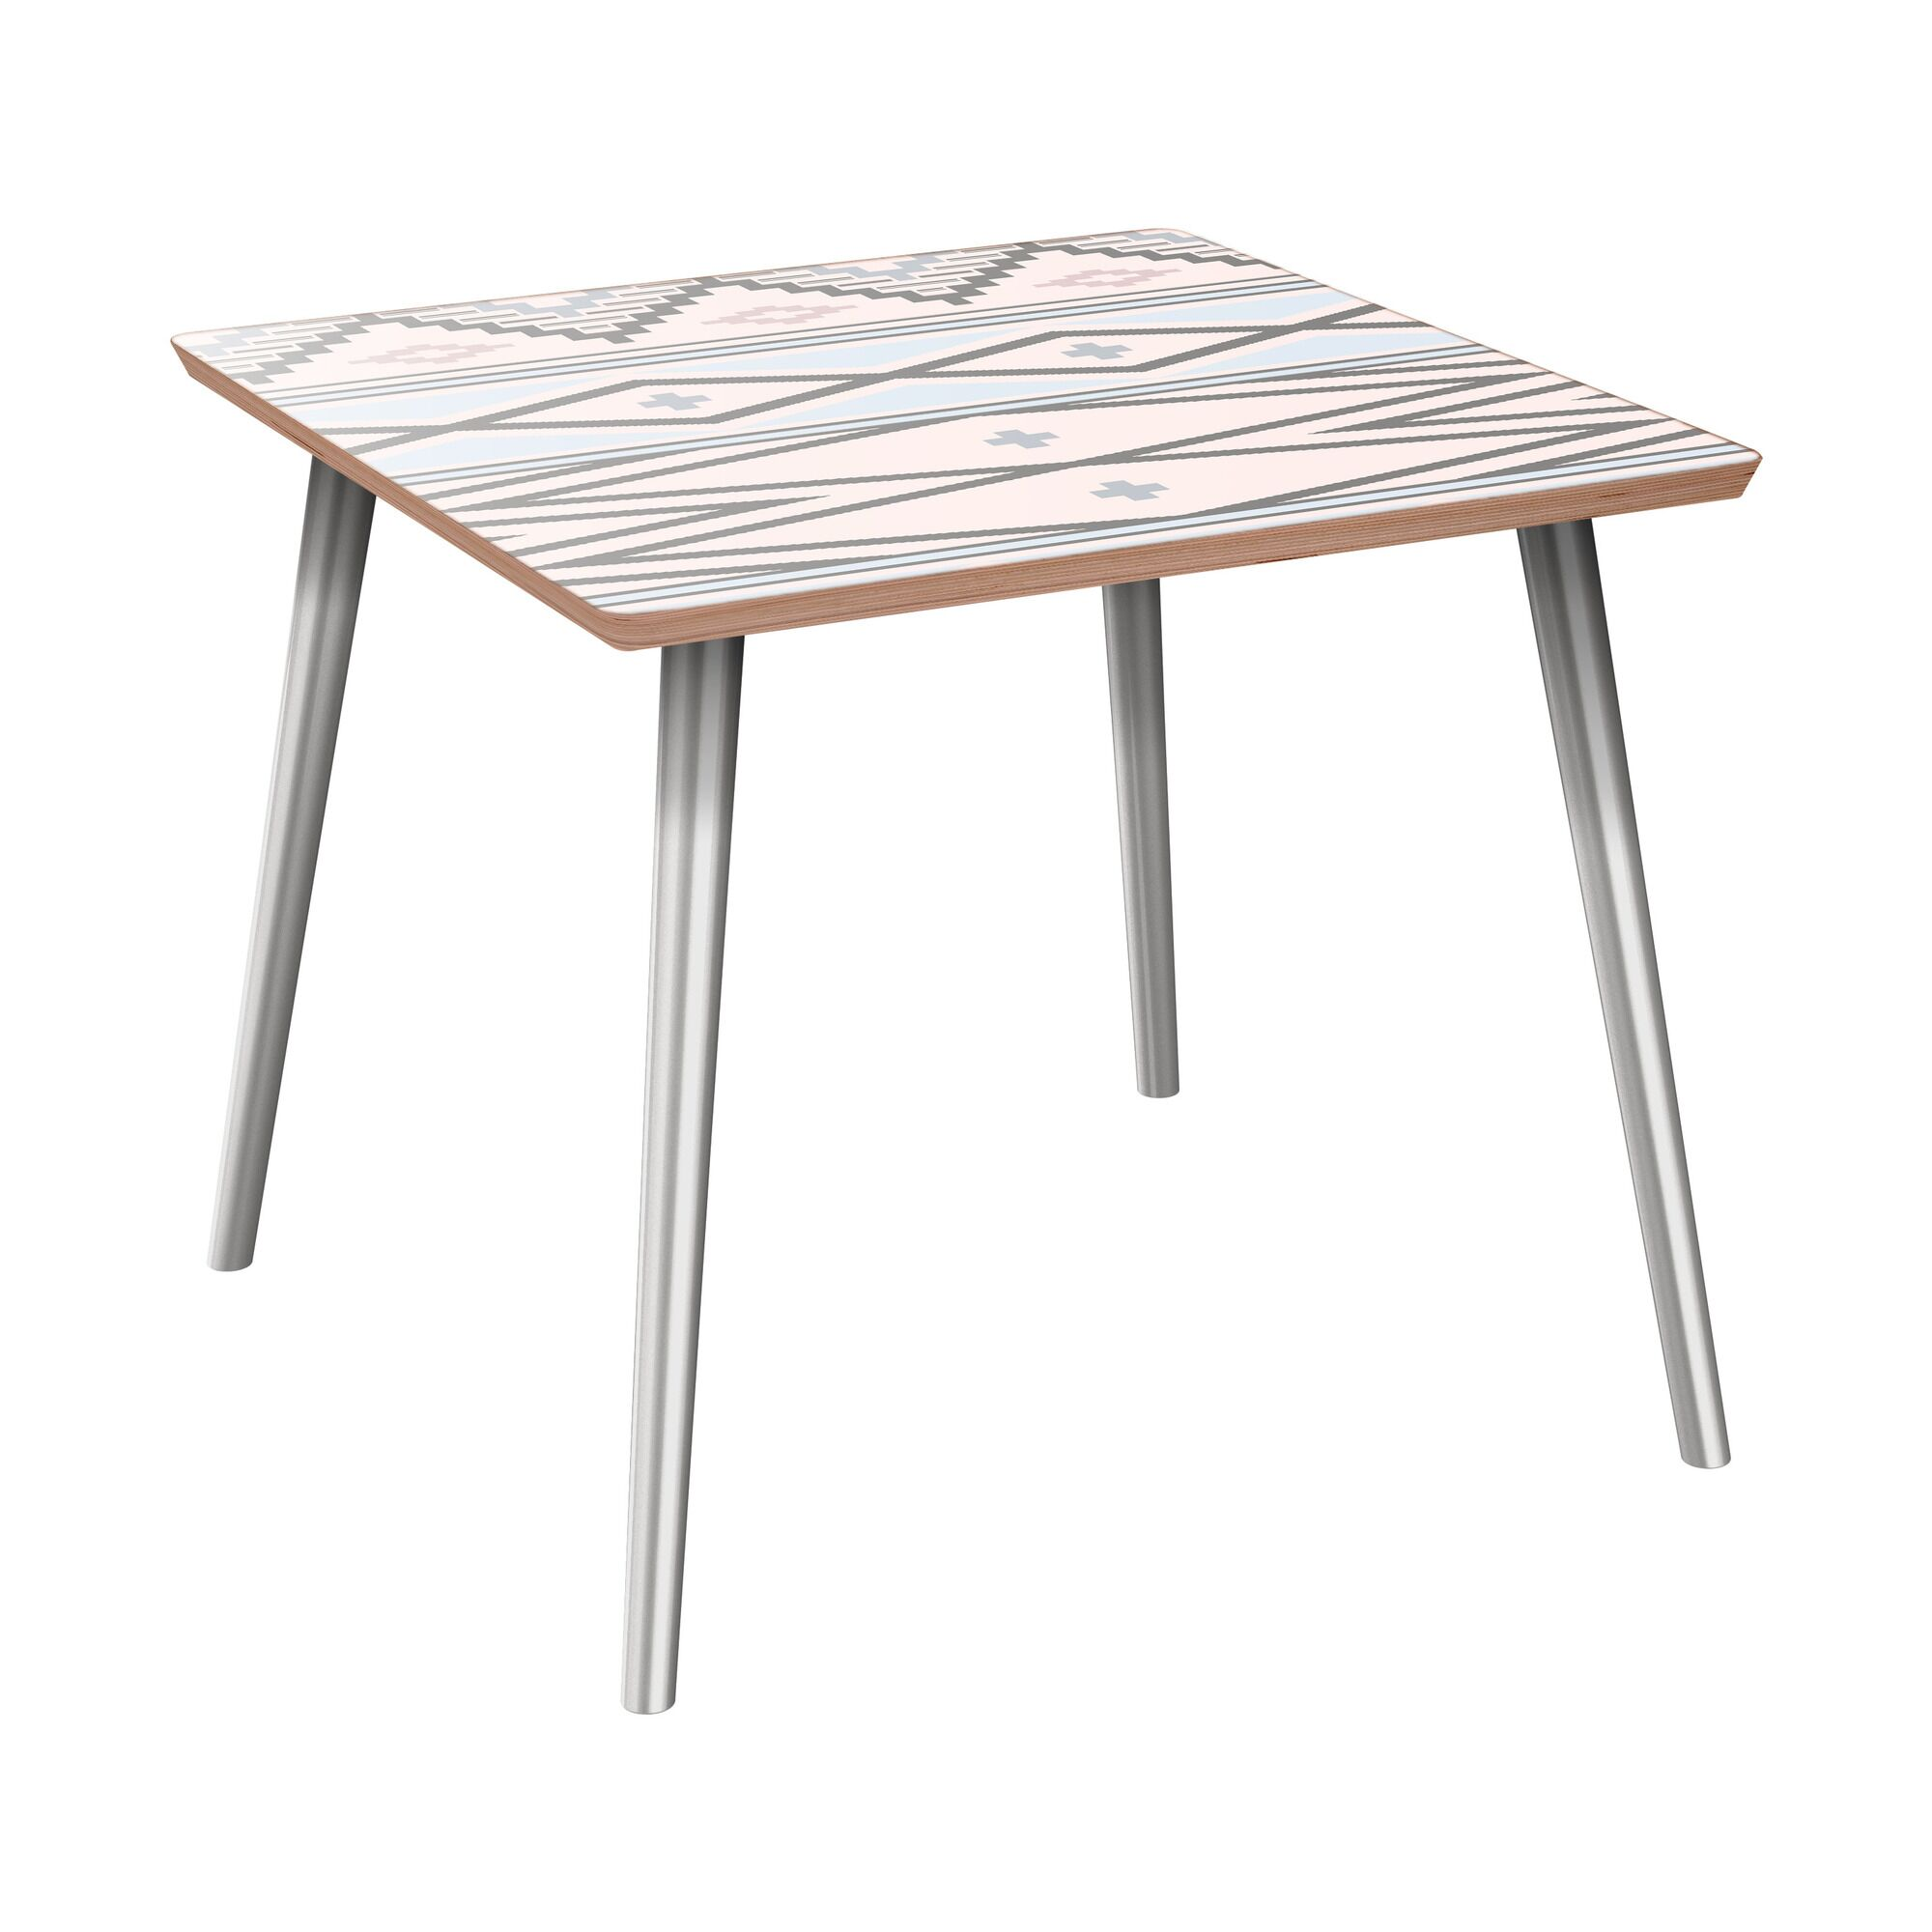 Houtz End Table Table Top Boarder Color: Walnut, Table Base Color: Chrome, Table Top Color: Pink/Blue